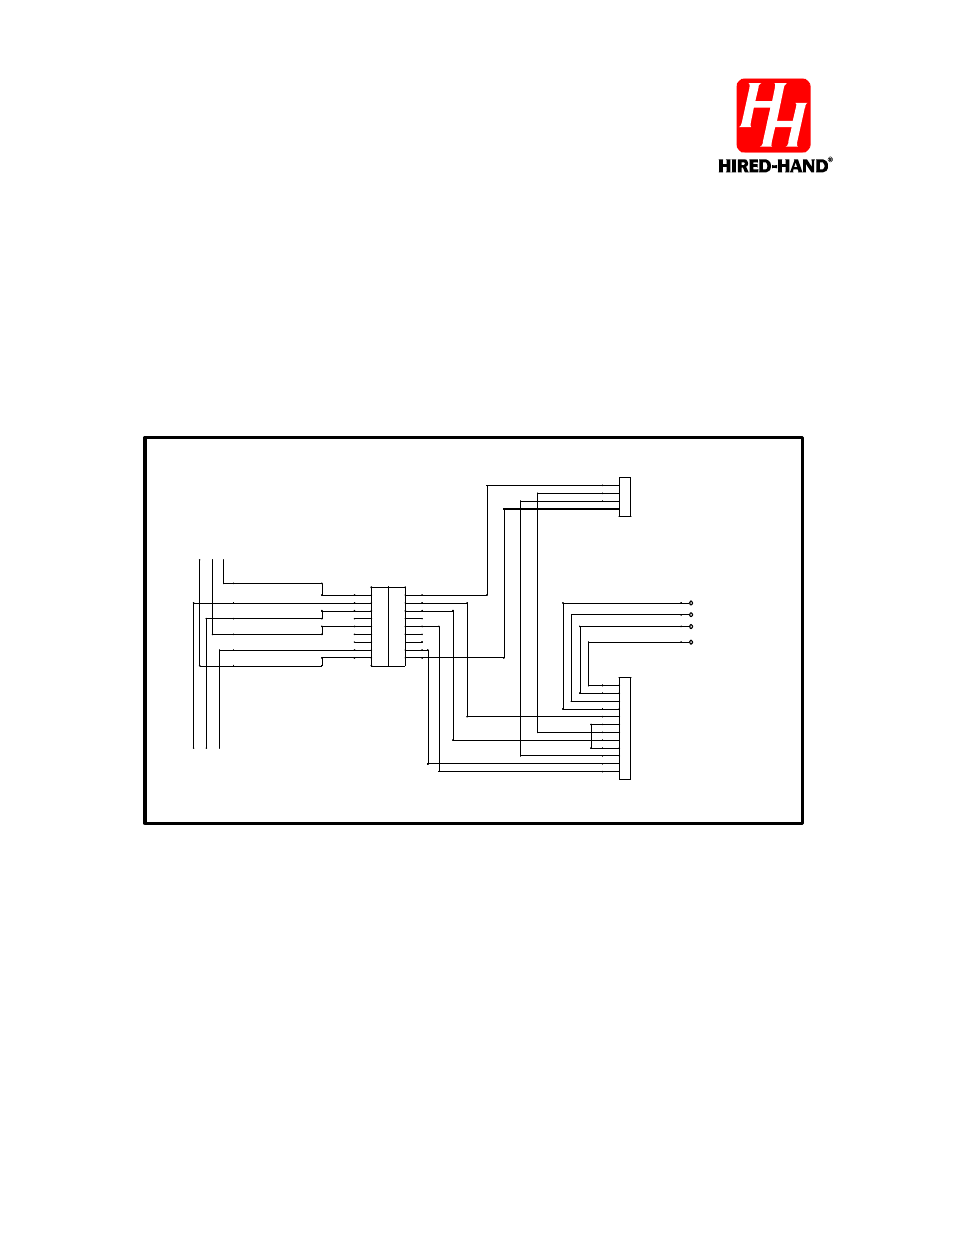 3 Wire Limit Switch Diagram Circuit Schematic Ac Inductive Proximity Wiring Hired Hand Powertrak Harness User Manual 1 Page Load Cell